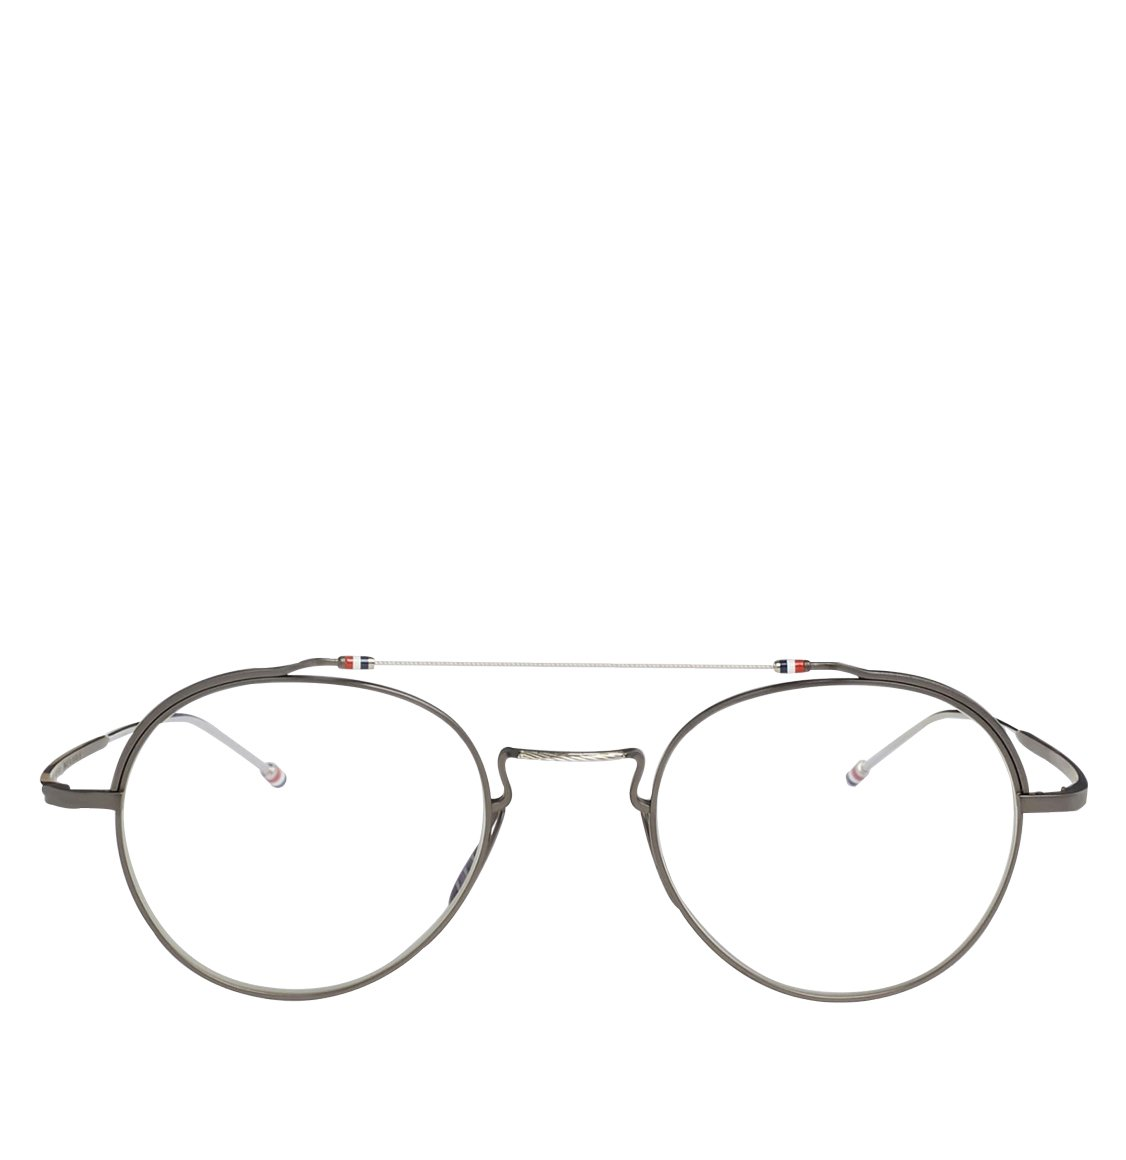 Thom Browne Black Iron And Silver Oval Optical Glasses Γυαλιά Οράσεως